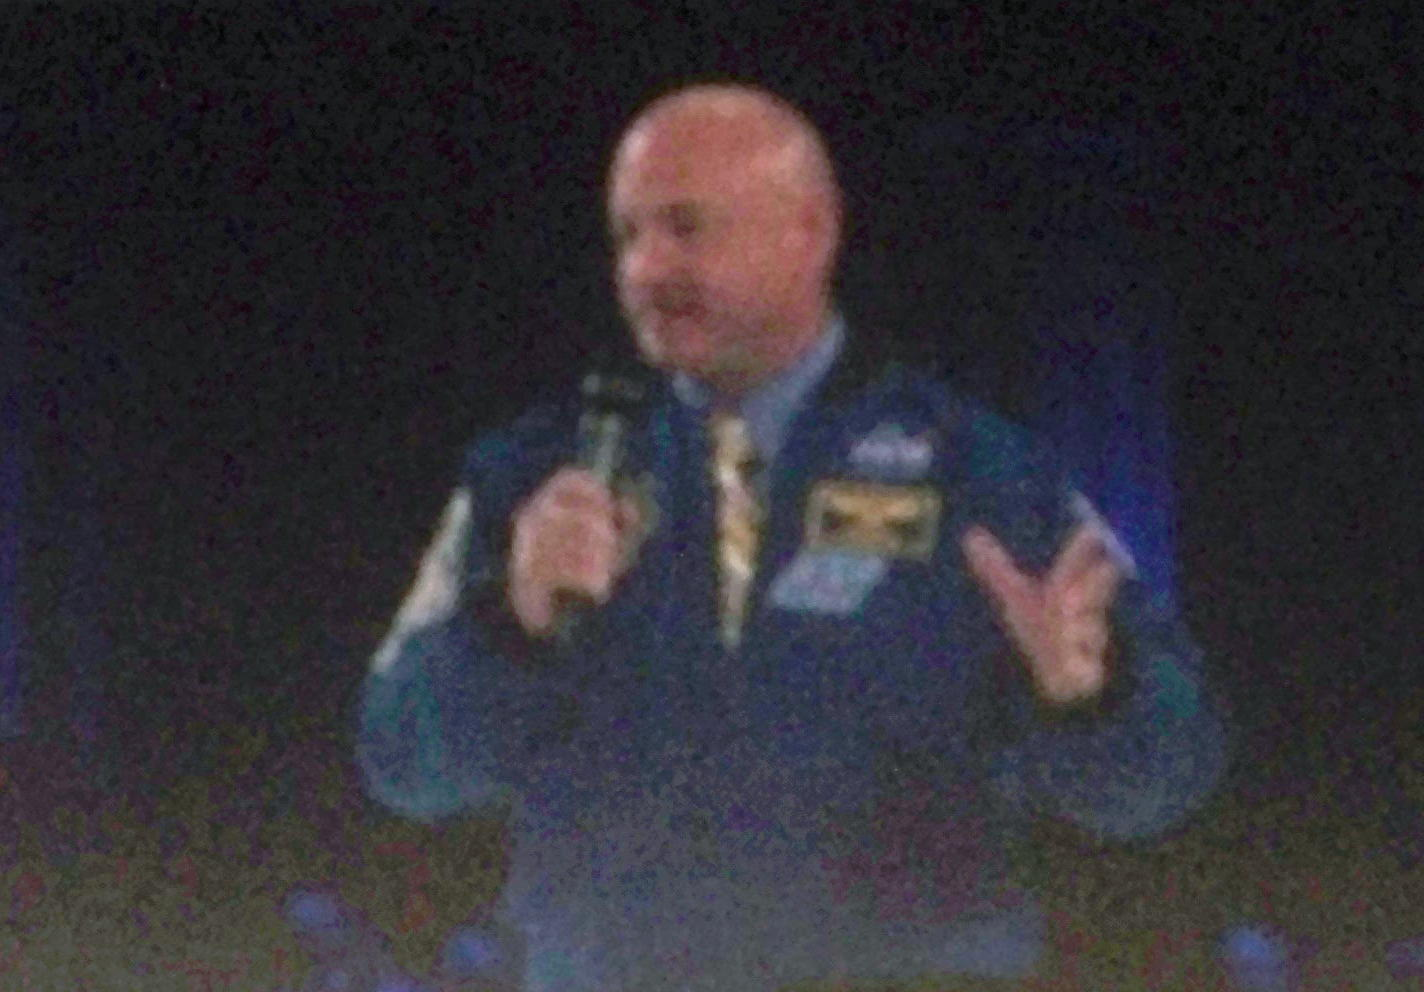 mark kelly astronaut speaking engagements - photo #14